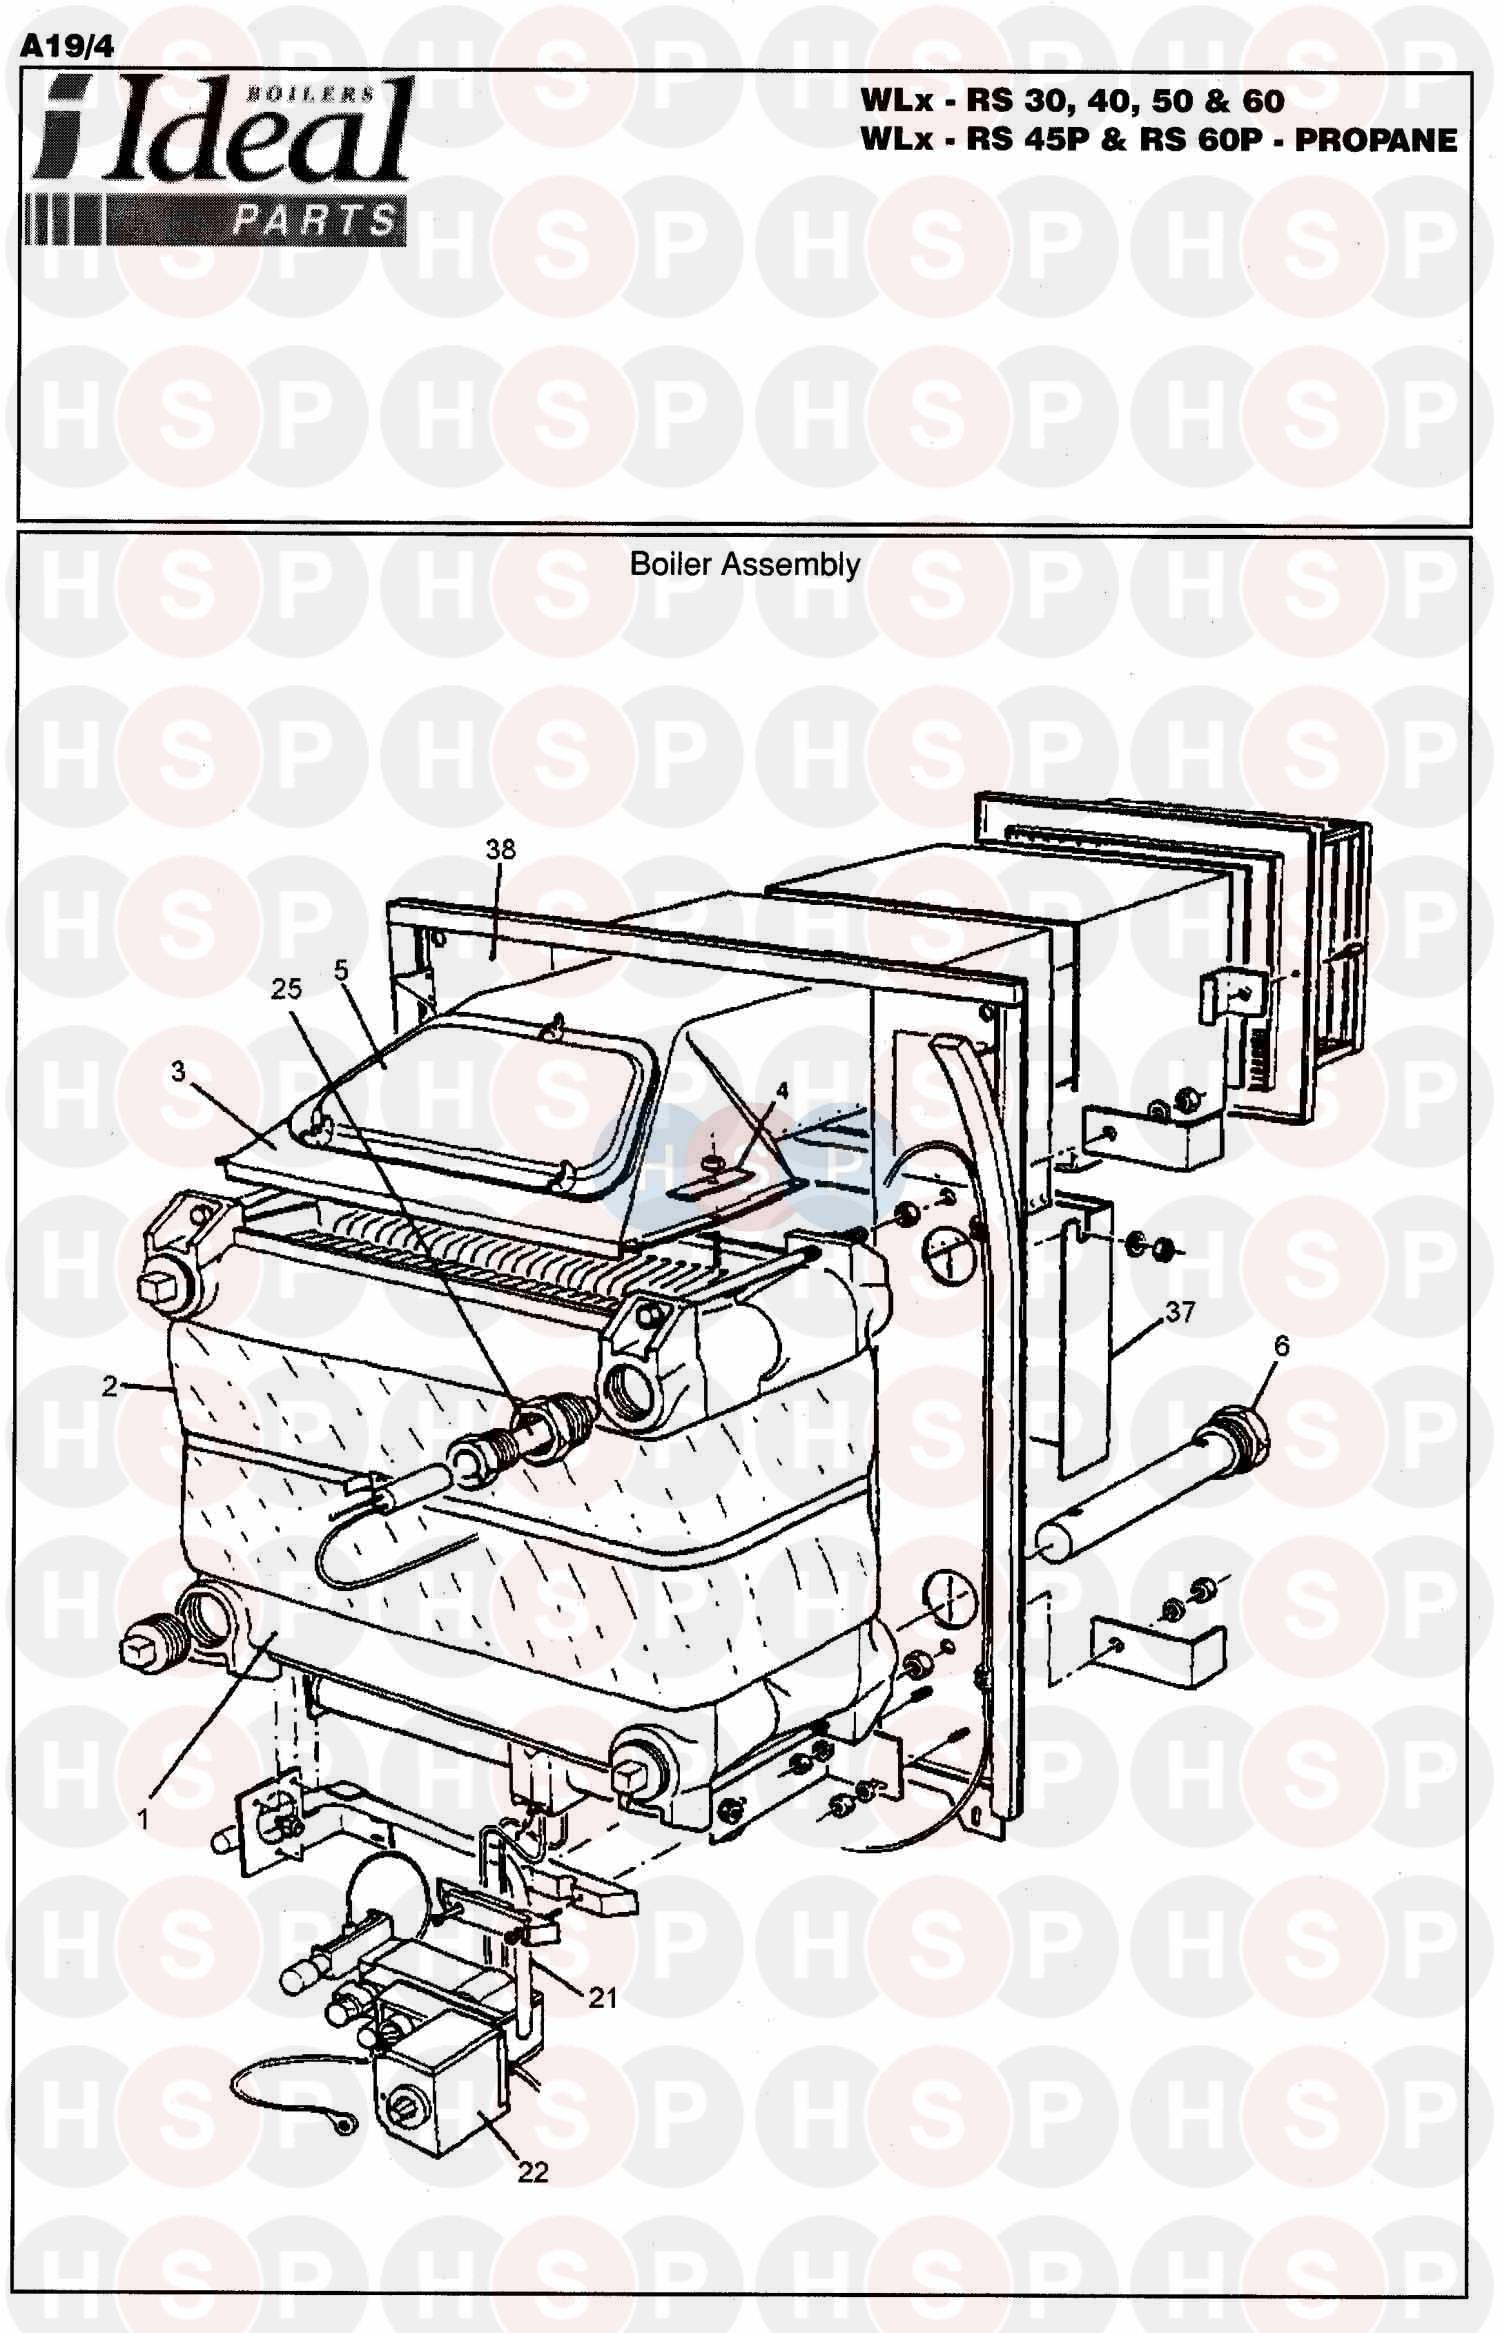 Ideal CONCORD WLX RS 50 (BOILER ASSEMBLY 1) Diagram